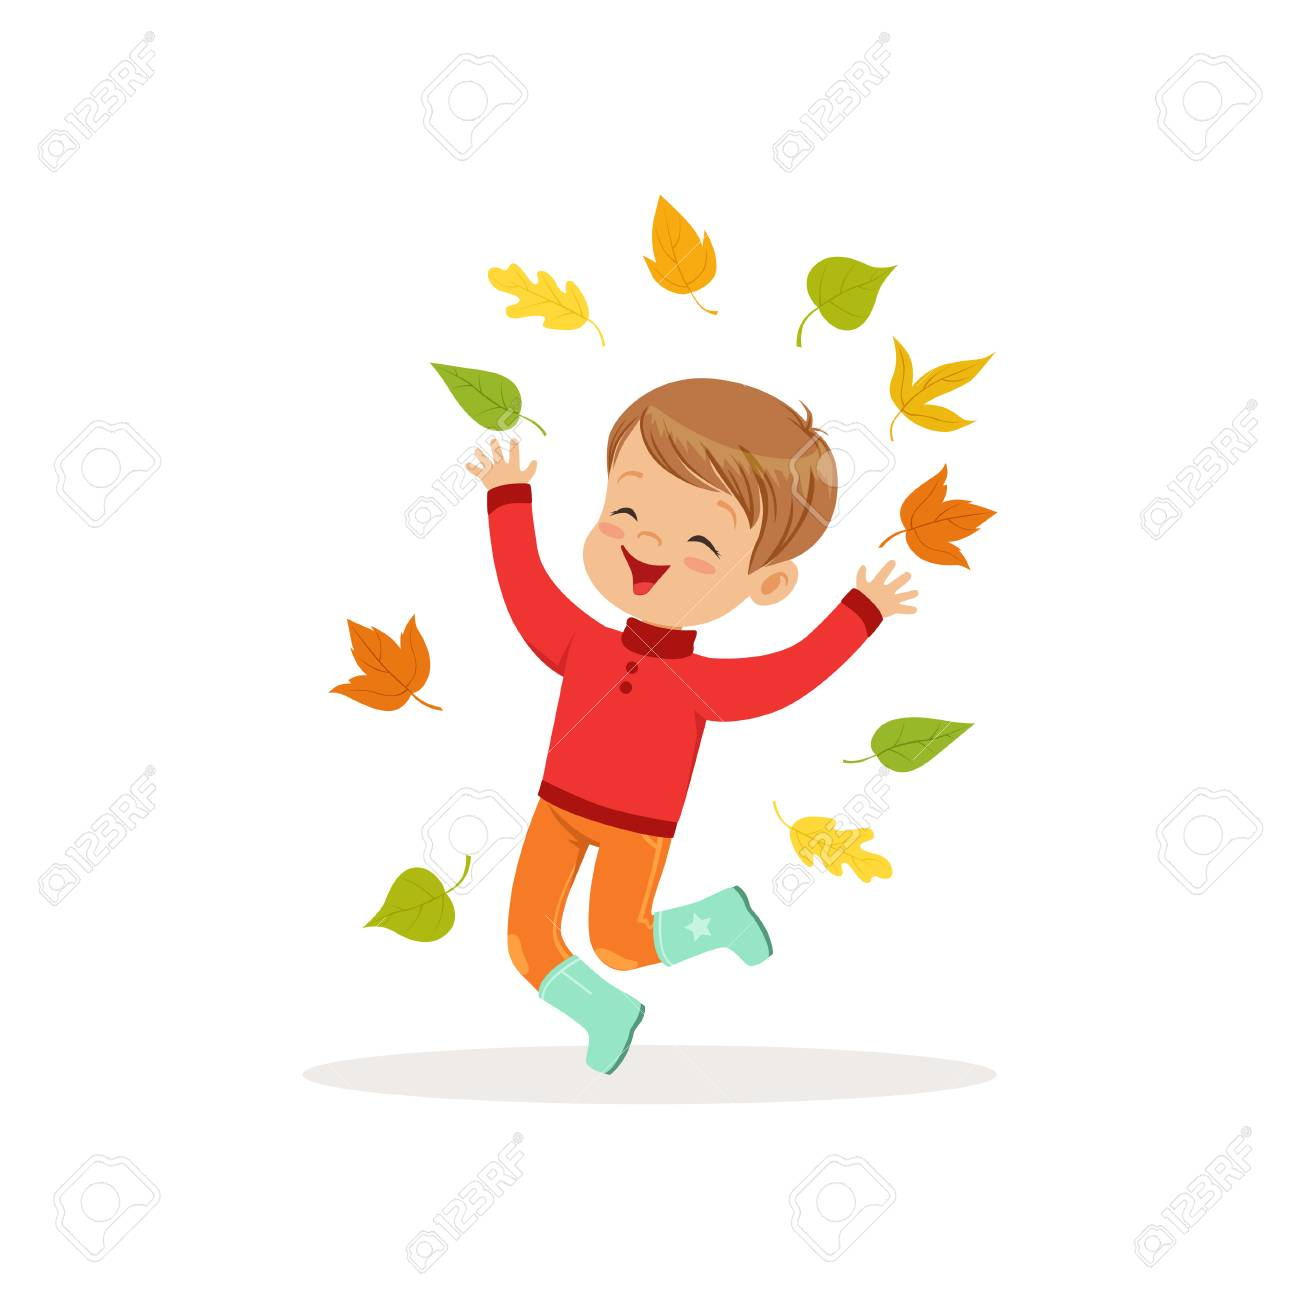 Cute little boy in warm clothing jumping and throwing autumn leaves up 09bbe52d5087b